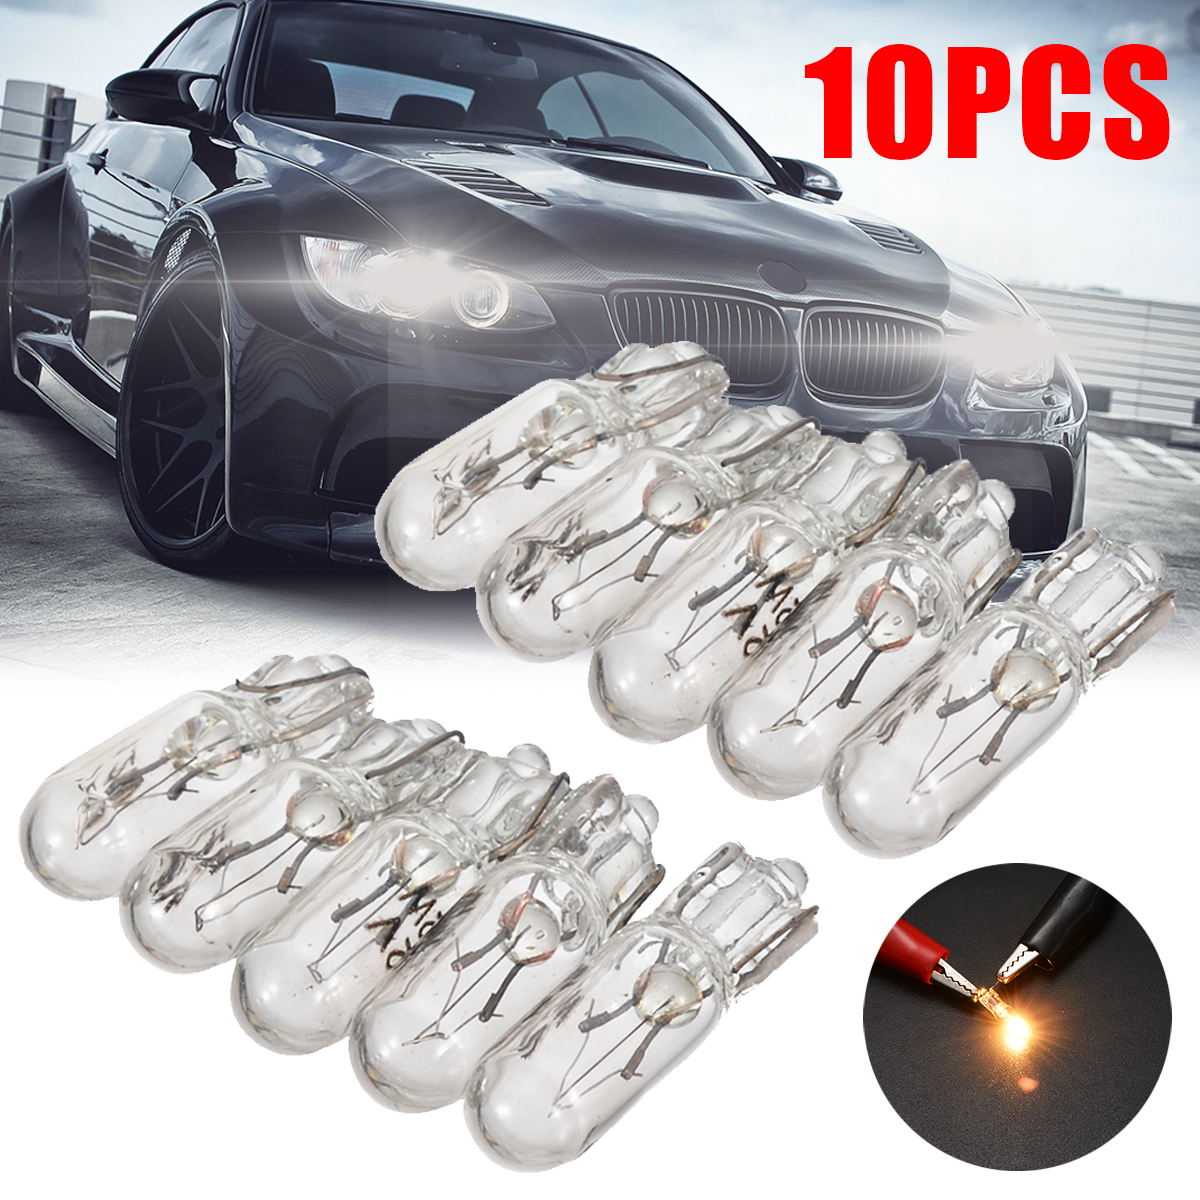 New Arrival 10pcs <font><b>12V</b></font> <font><b>1.2W</b></font> <font><b>T5</b></font> 286 Glass Amber Light Blub Car Wedge Dashboard Instrument Panel Brake Light Bulbs image